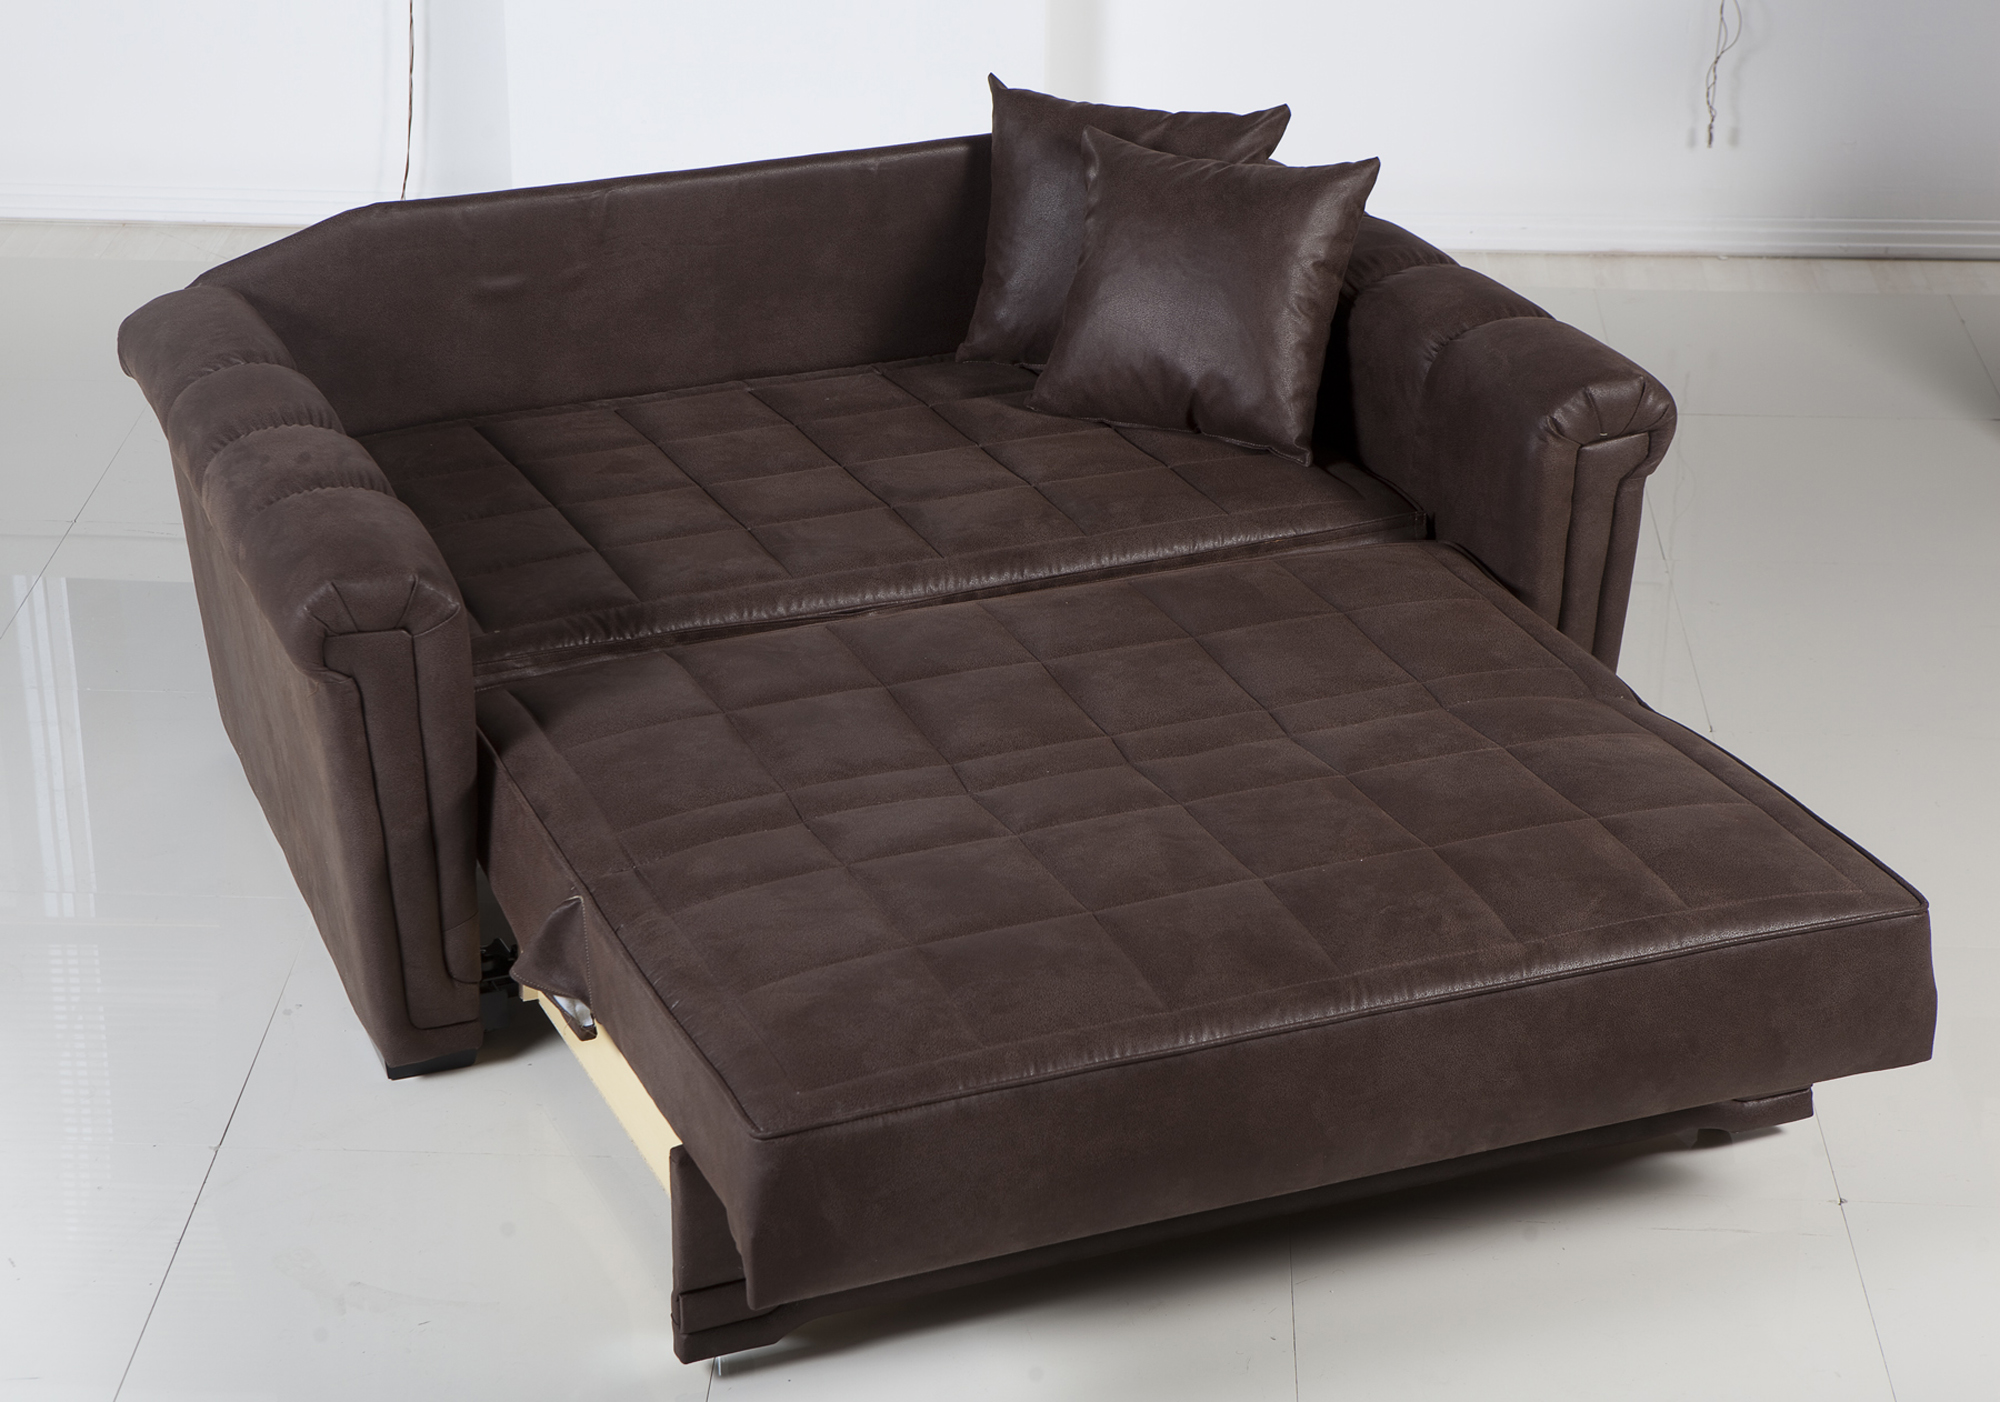 target archaicawful home ikea of queen best size gray furniture sofas bed sleeper valerie loveseat love seat photo sunset full diego ideas by sofa beds hide a concept